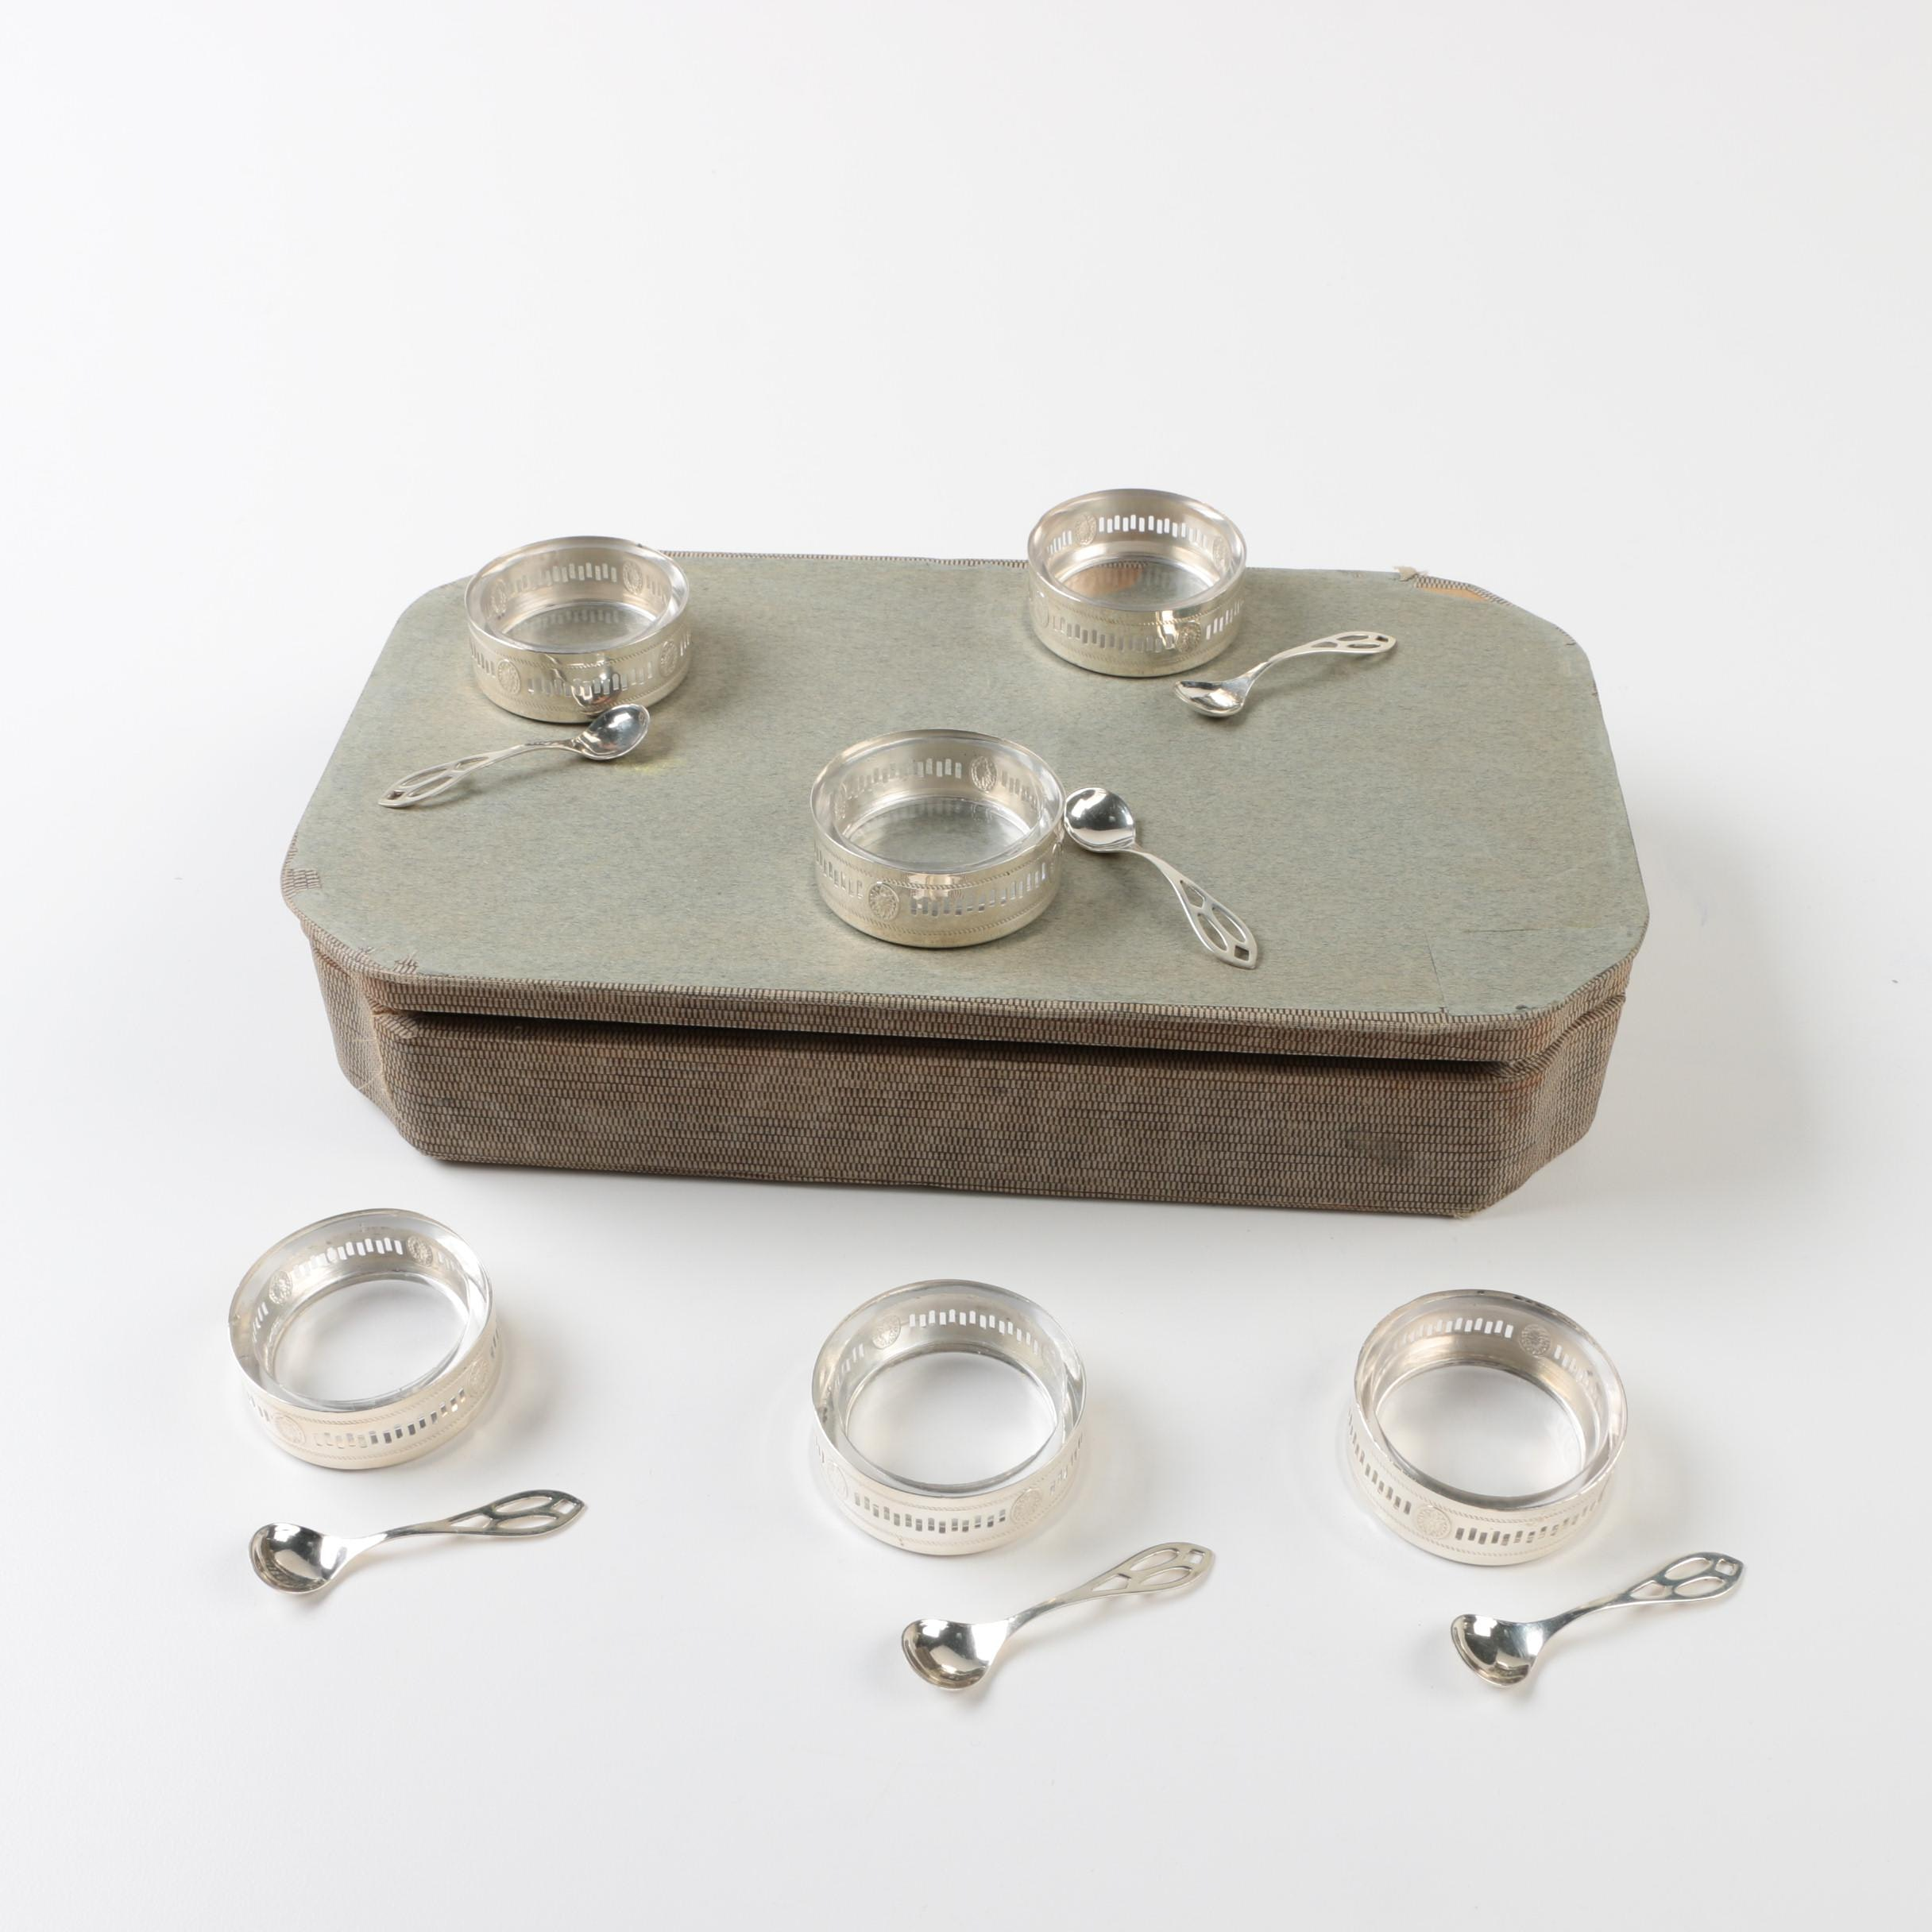 Webster Company Sterling Silver Salt Cellar and Spoon Set with Glass Inserts